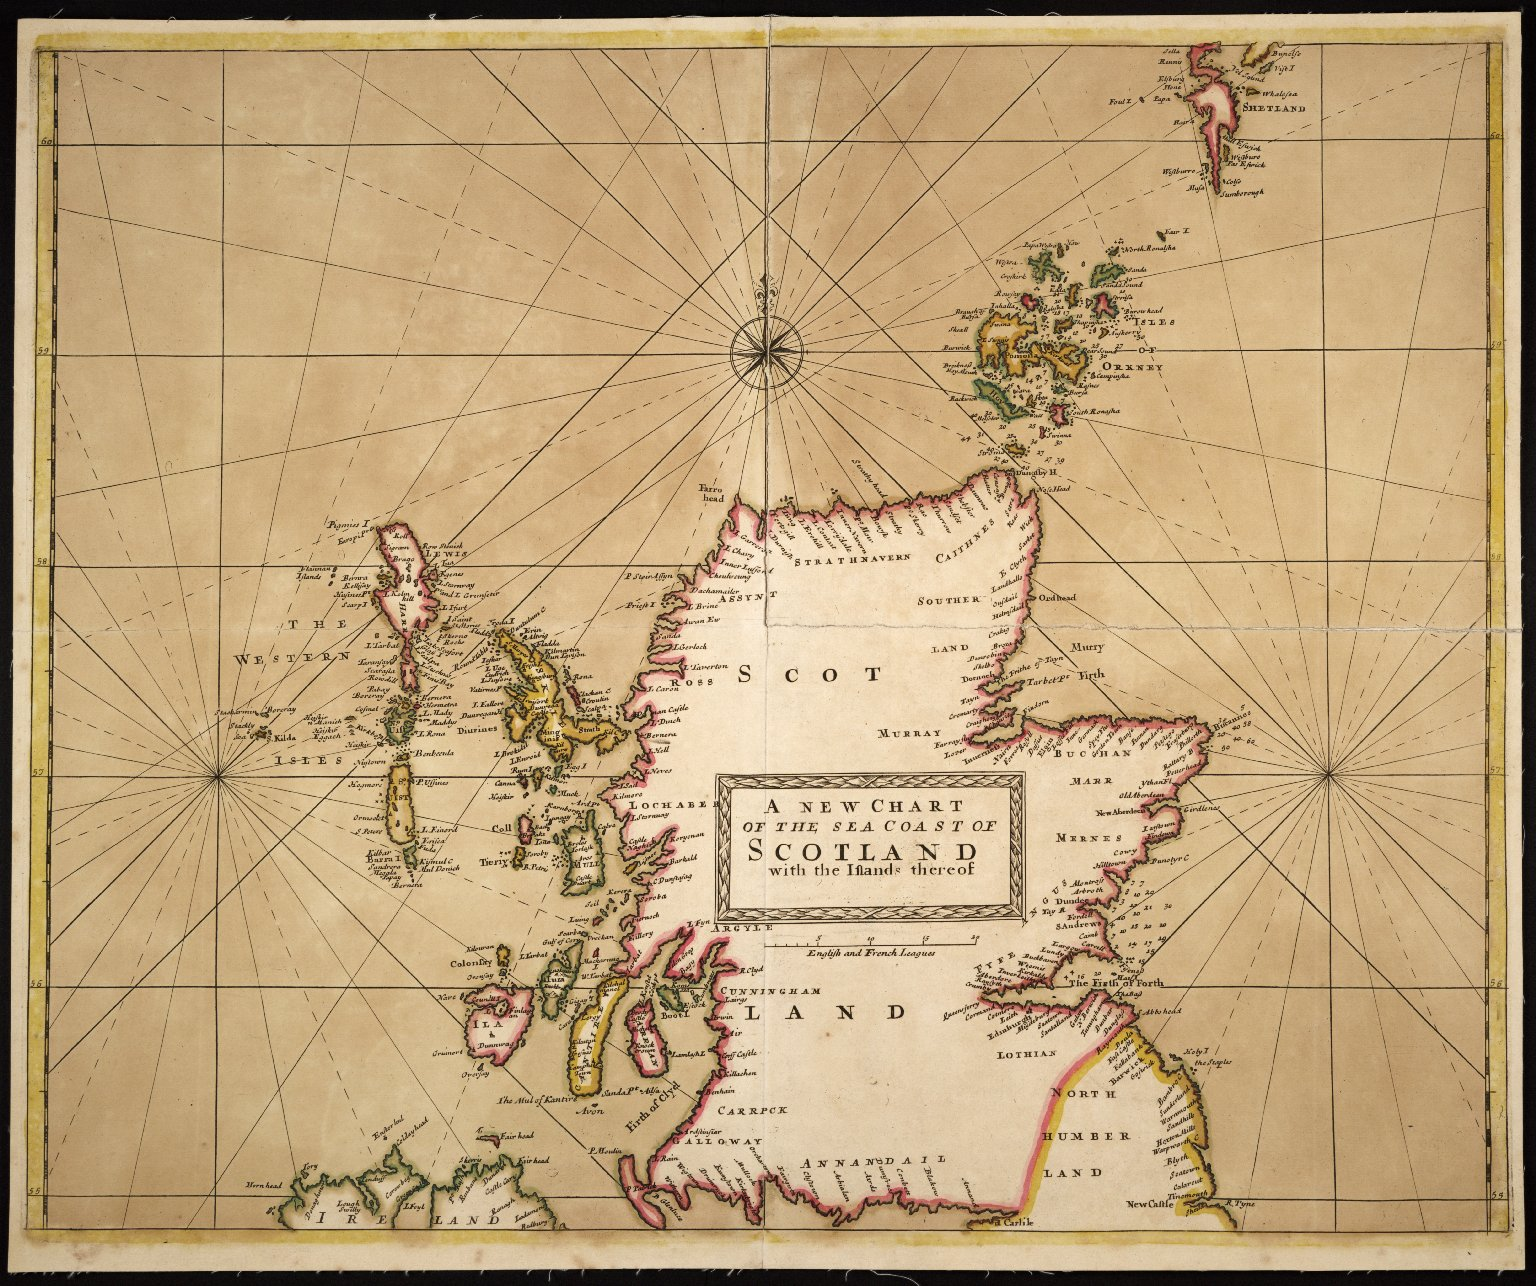 NEW CHART OF THE SEA COAST OF SCOTLAND with the islands thereof [1 of 1]